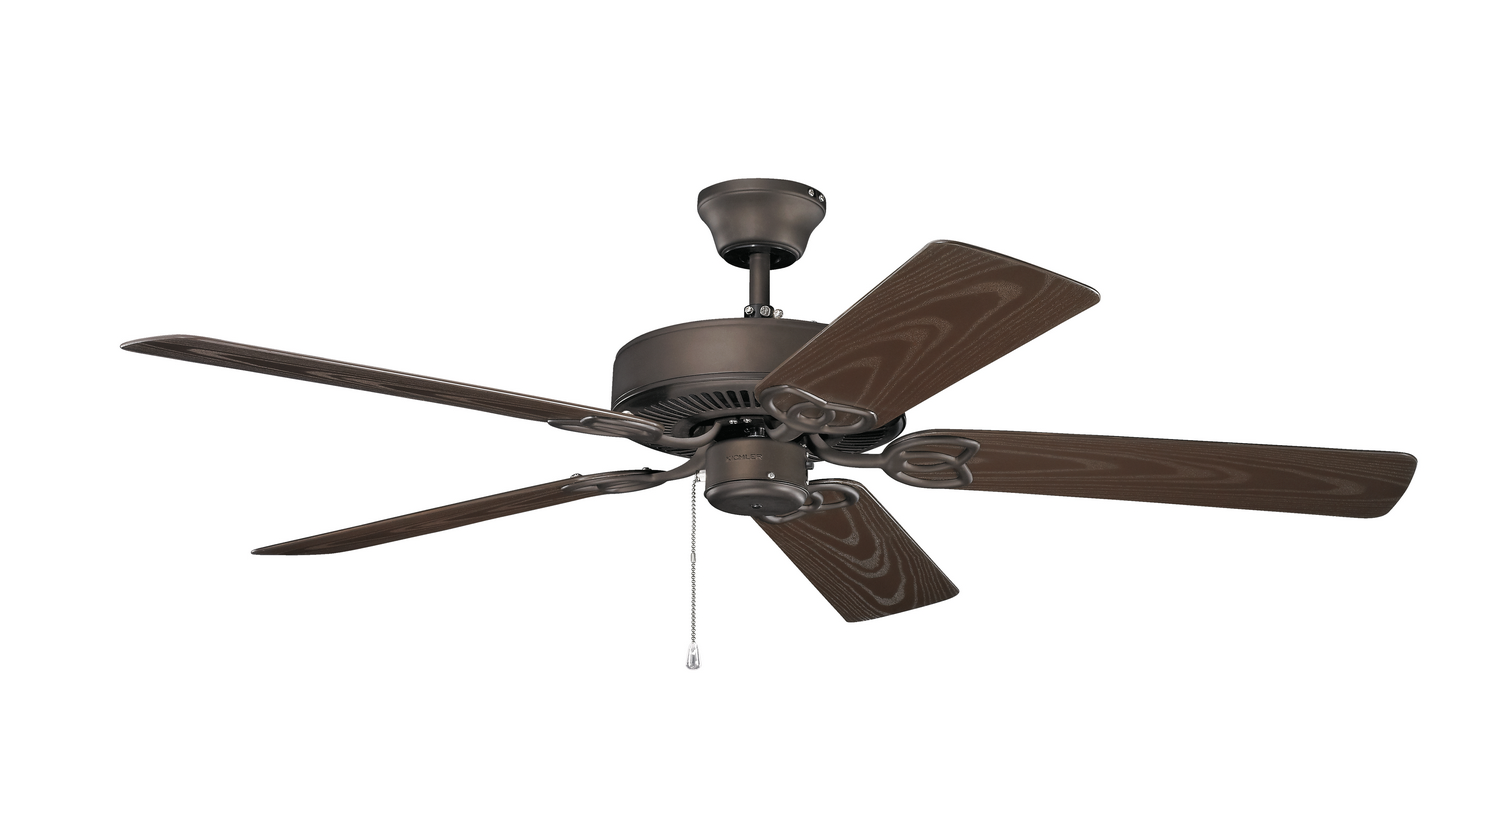 52 inchCeiling Fan from the Basics collection by Kichler 401SNB